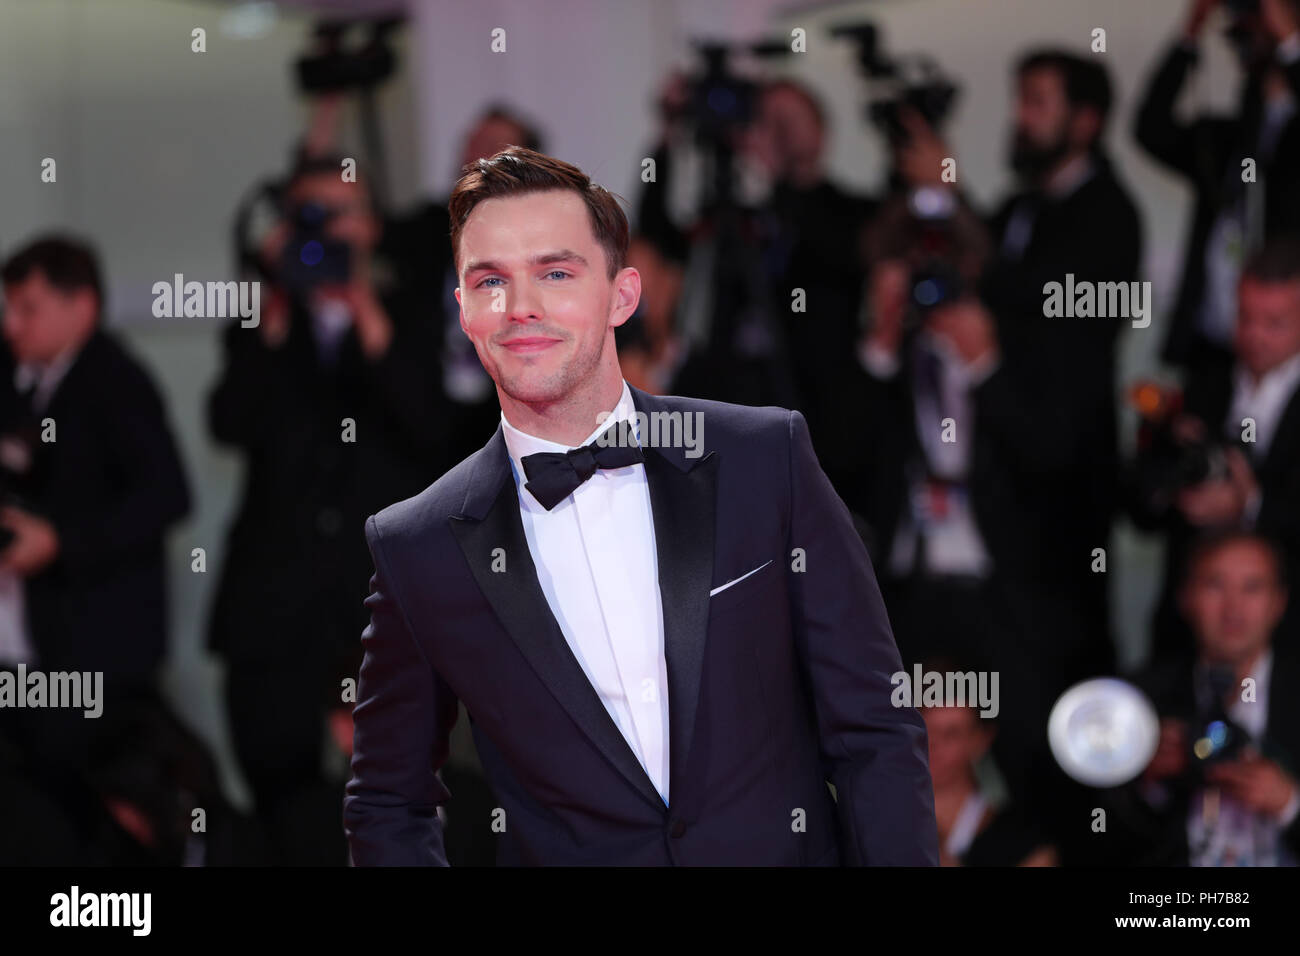 Nicholas Hoult Stock Photos & Nicholas Hoult Stock Images ...